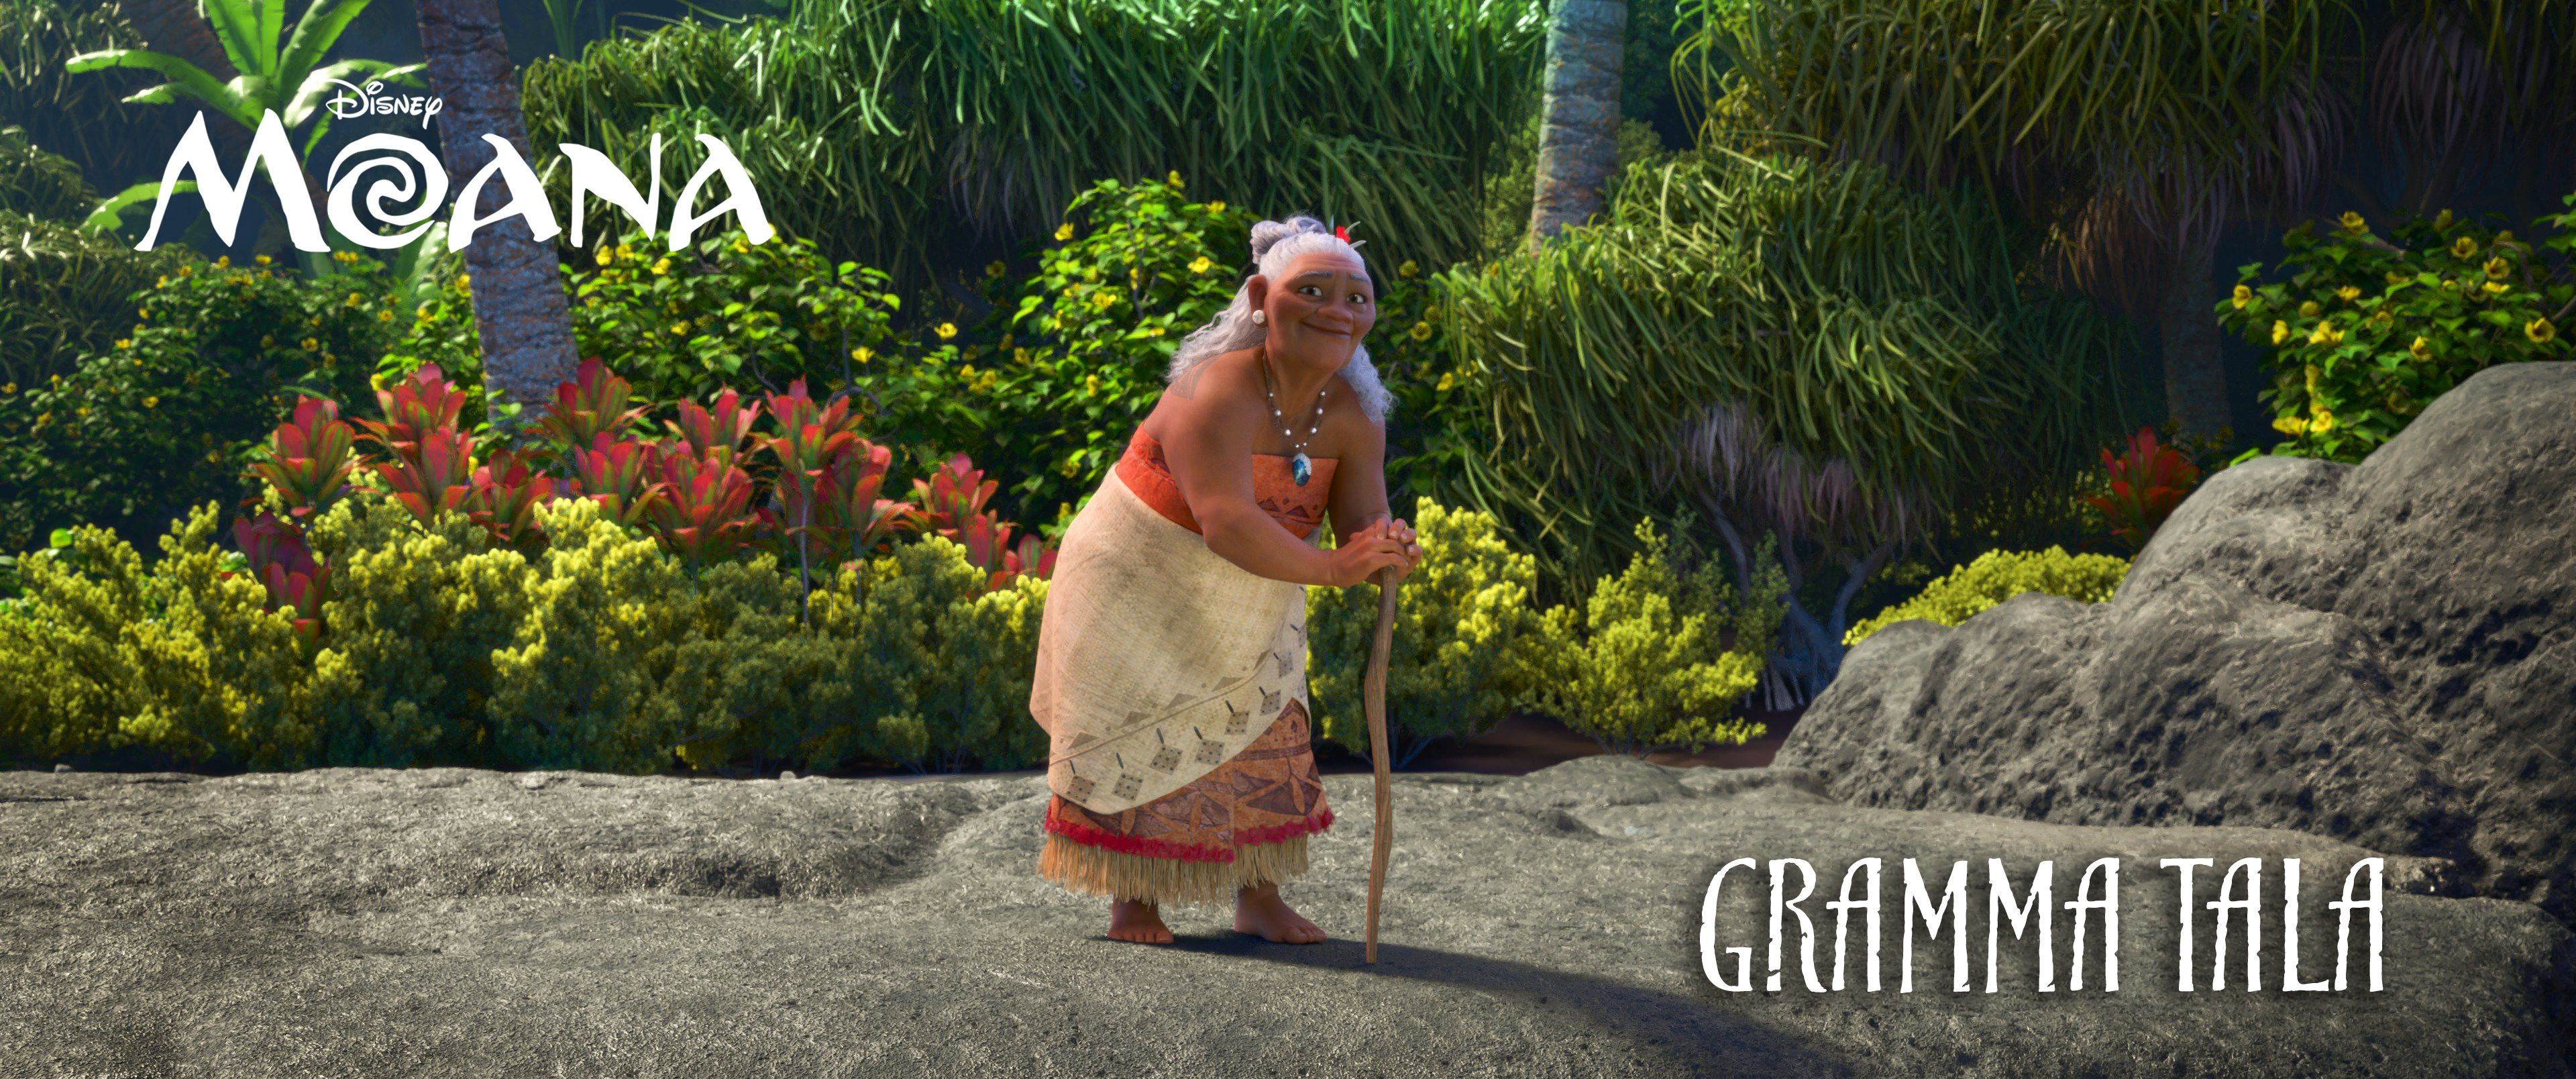 Moana Cast and Characters Revealed in New Colorful Images ... Pictures Of Moana Characters